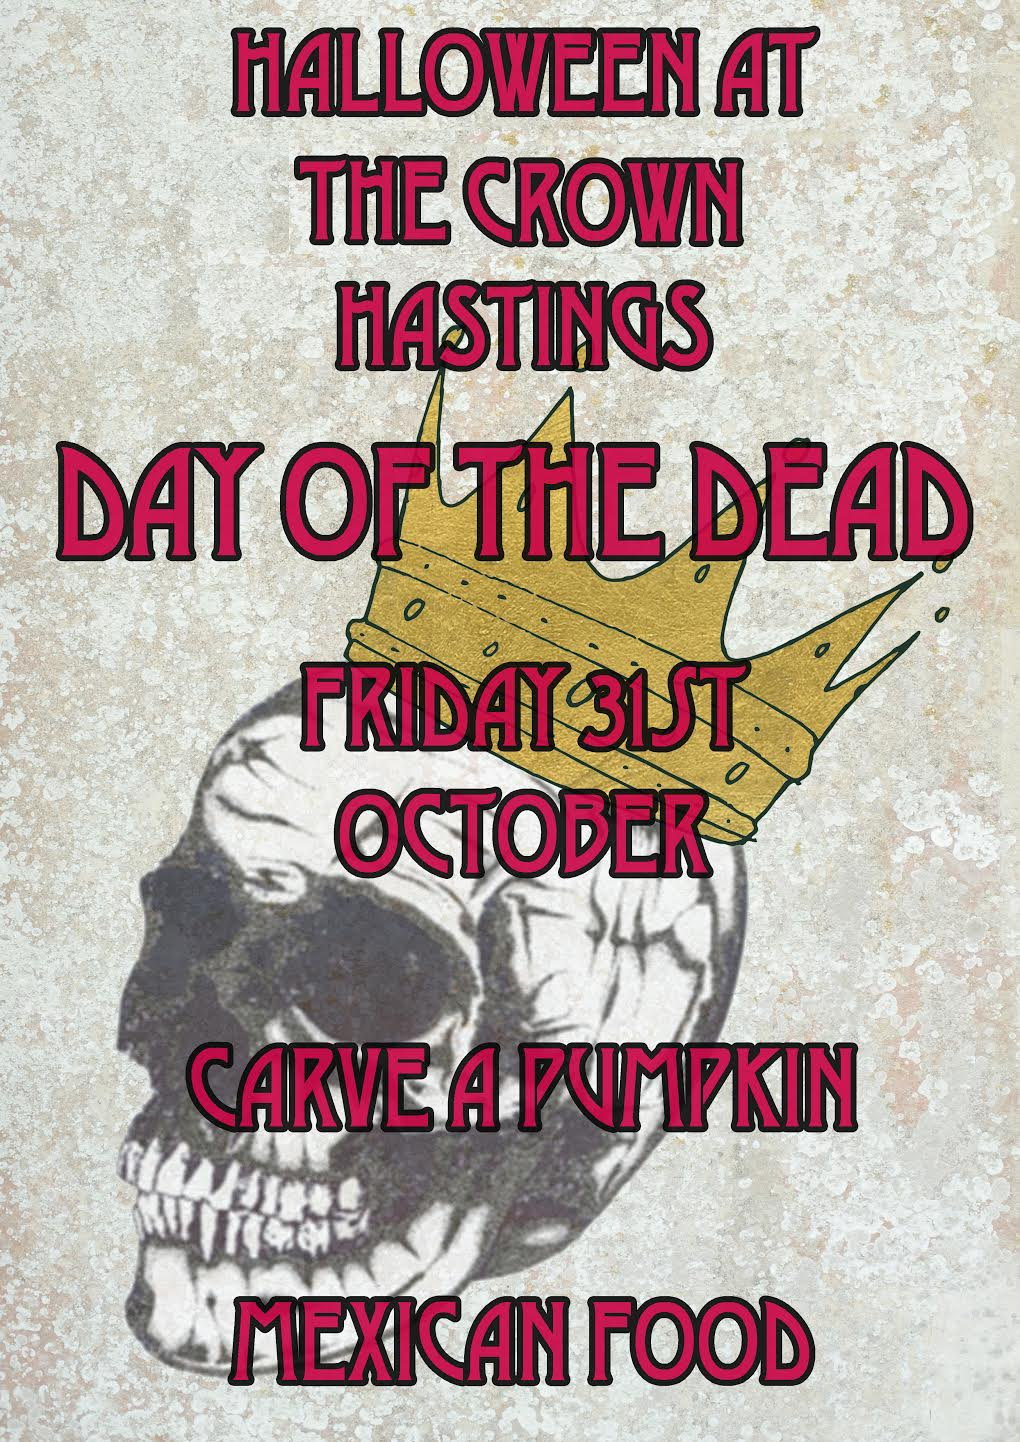 Poster for Day of the Dead Mexican Halloween